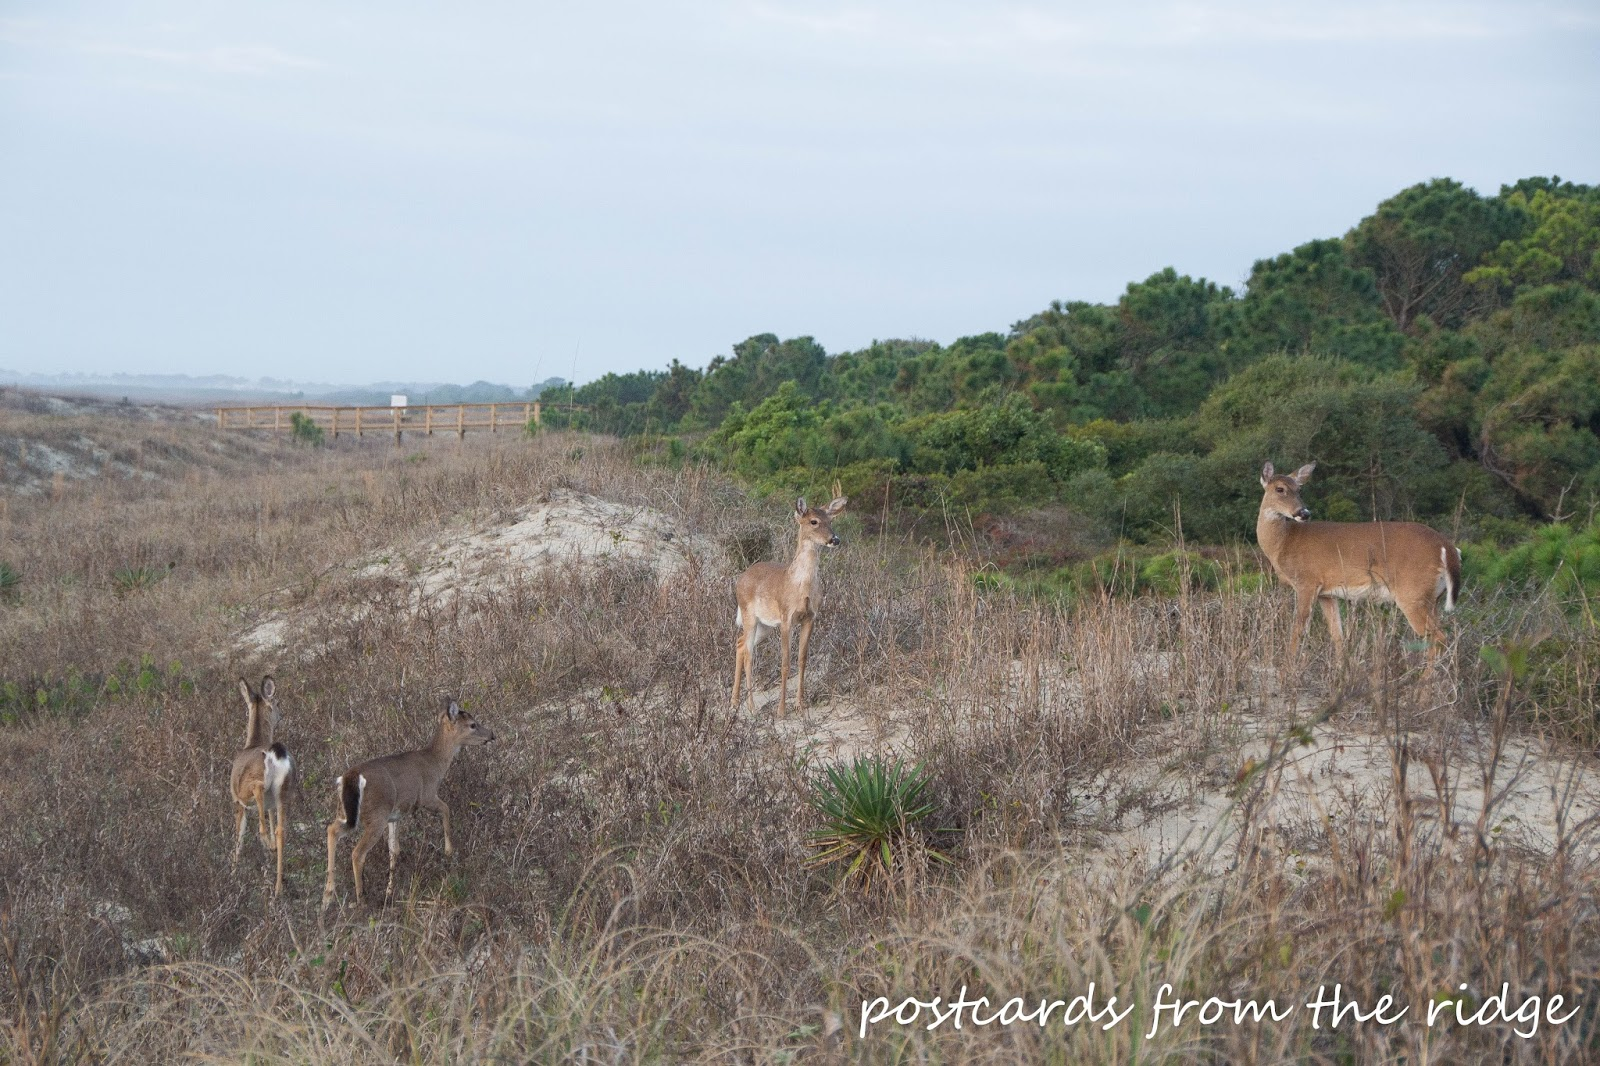 Deer grazing on the dunes at Kiawah Island, SC. Postcards from the Ridge.